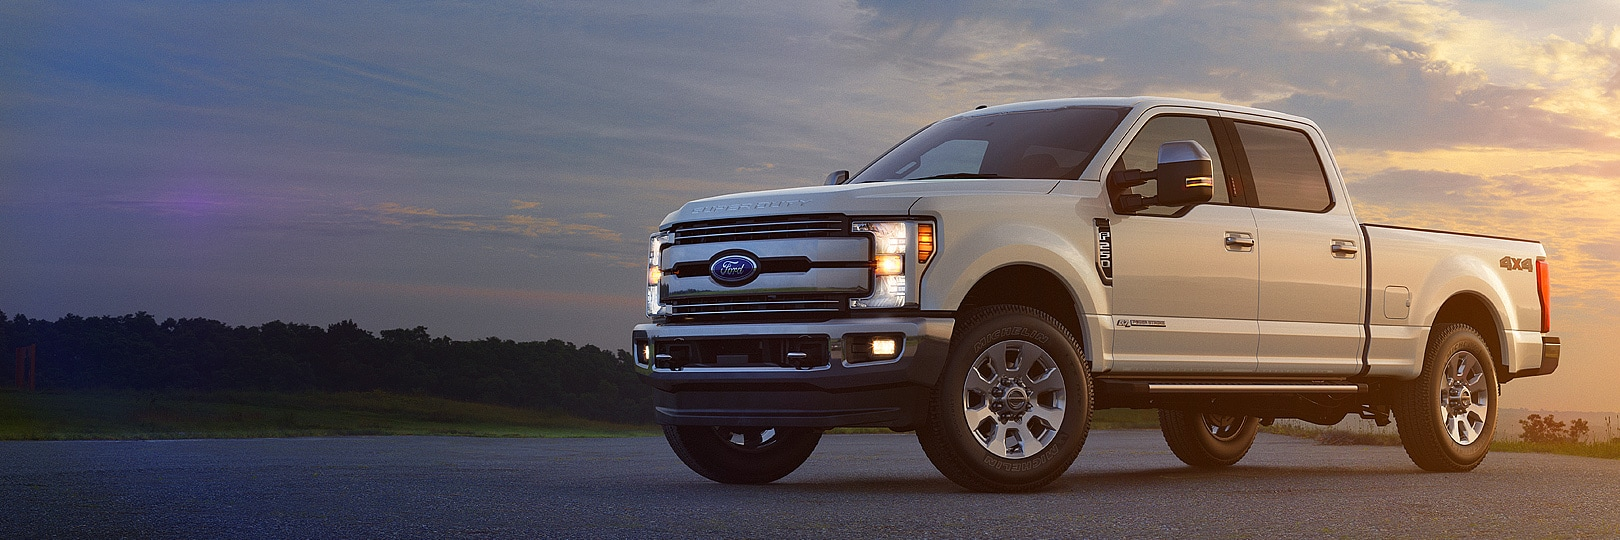 Ford Trucks F 150 F 250 F 350 Trucks For Sale Near Me